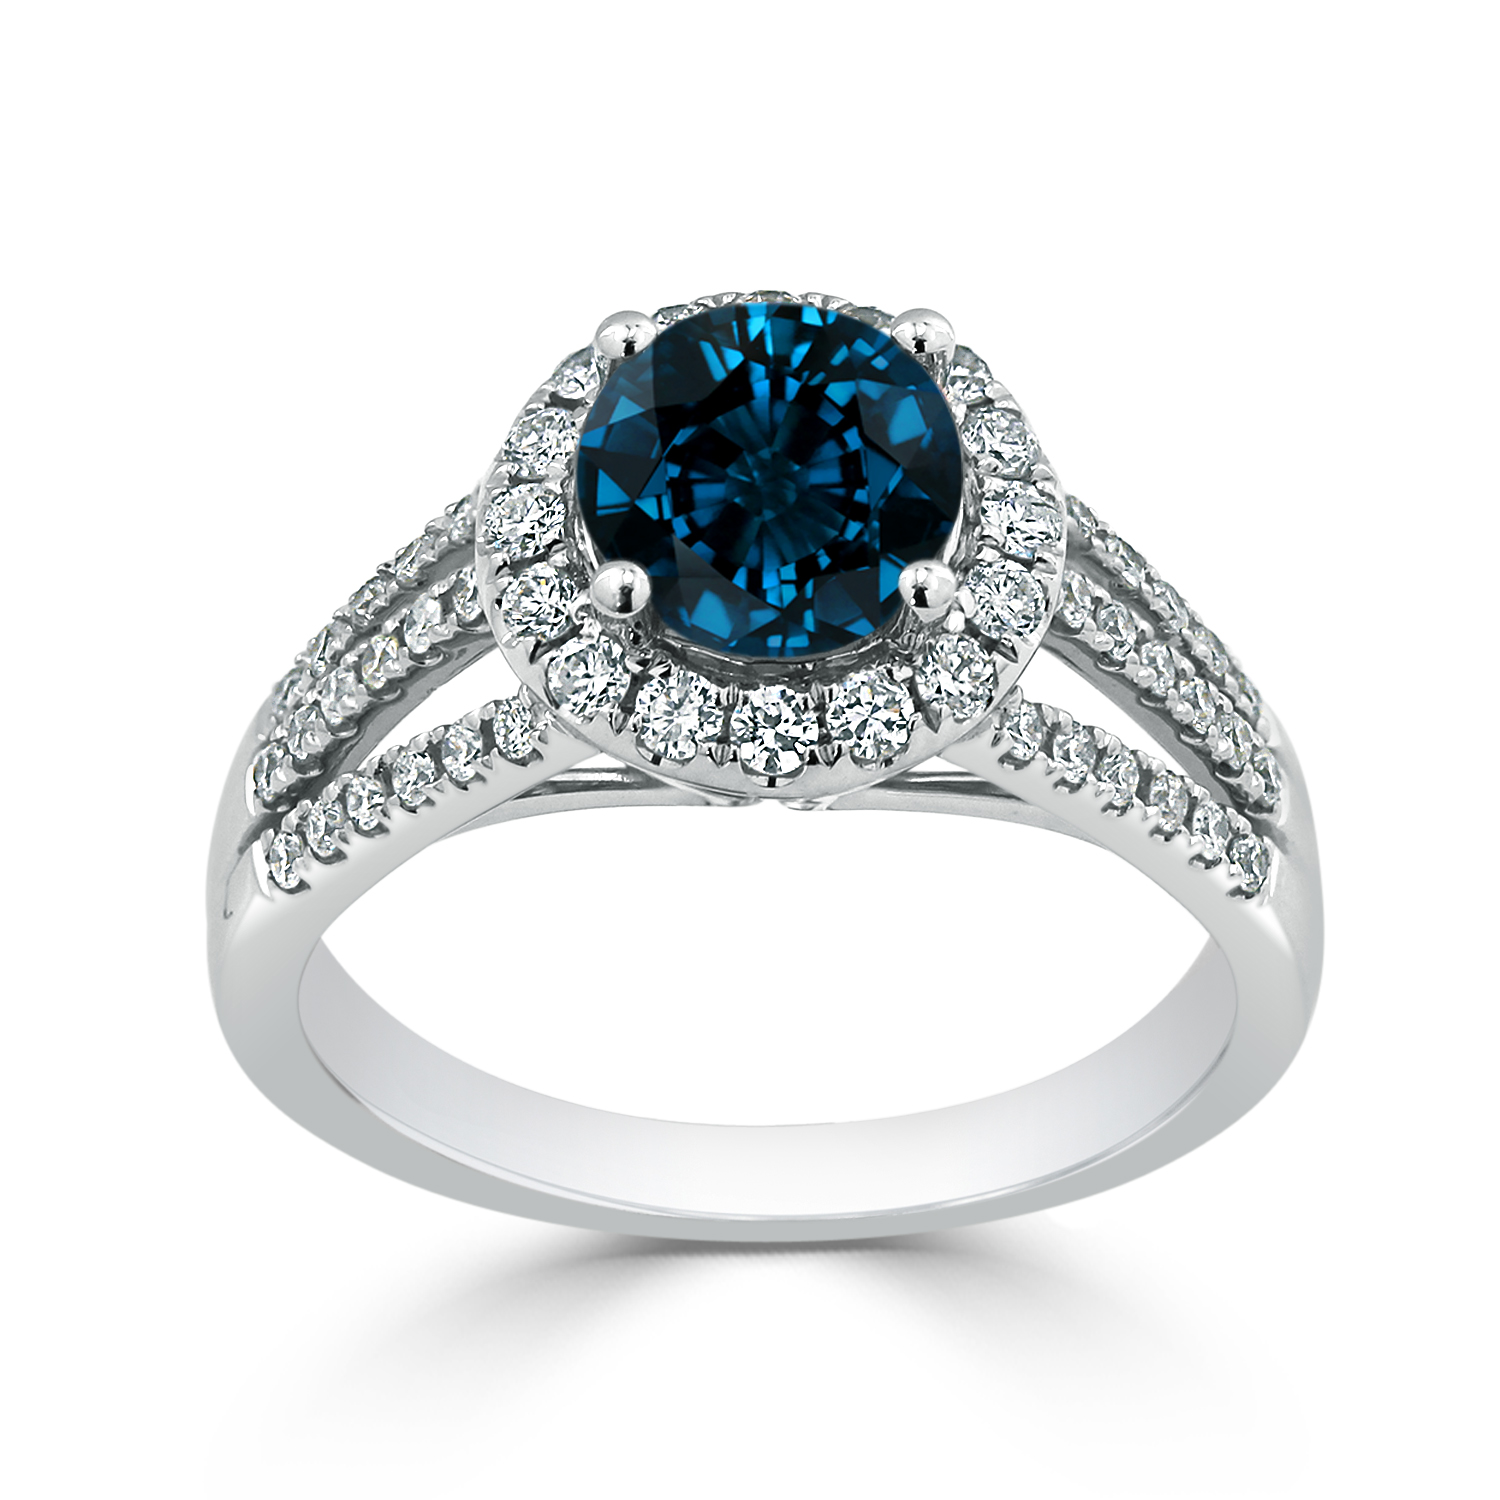 Halo London Blue Topaz Diamond Ring in 14K White Gold with 1.30 carat Round London Blue Topaz